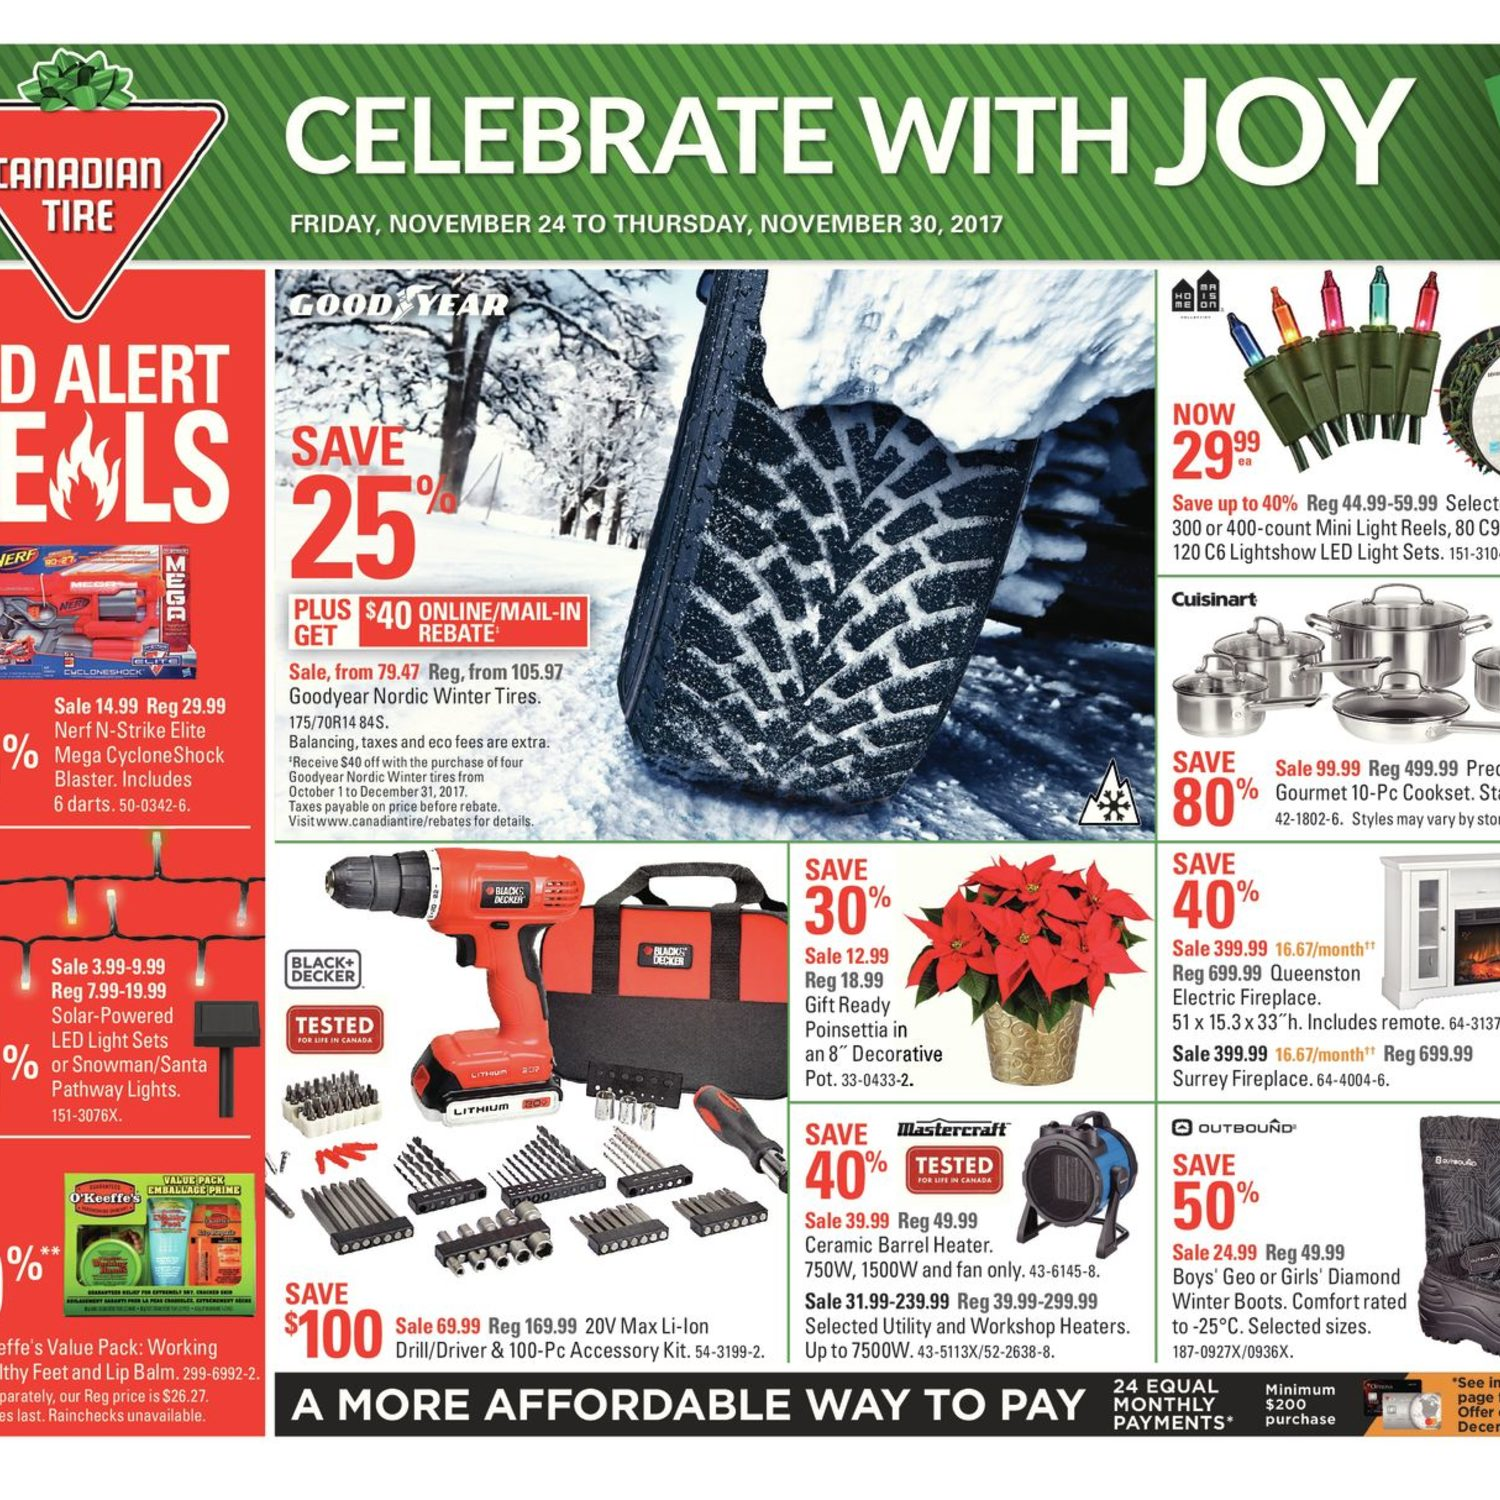 Canadian Tire Weekly Flyer Weekly Celebrate with Joy Nov 24